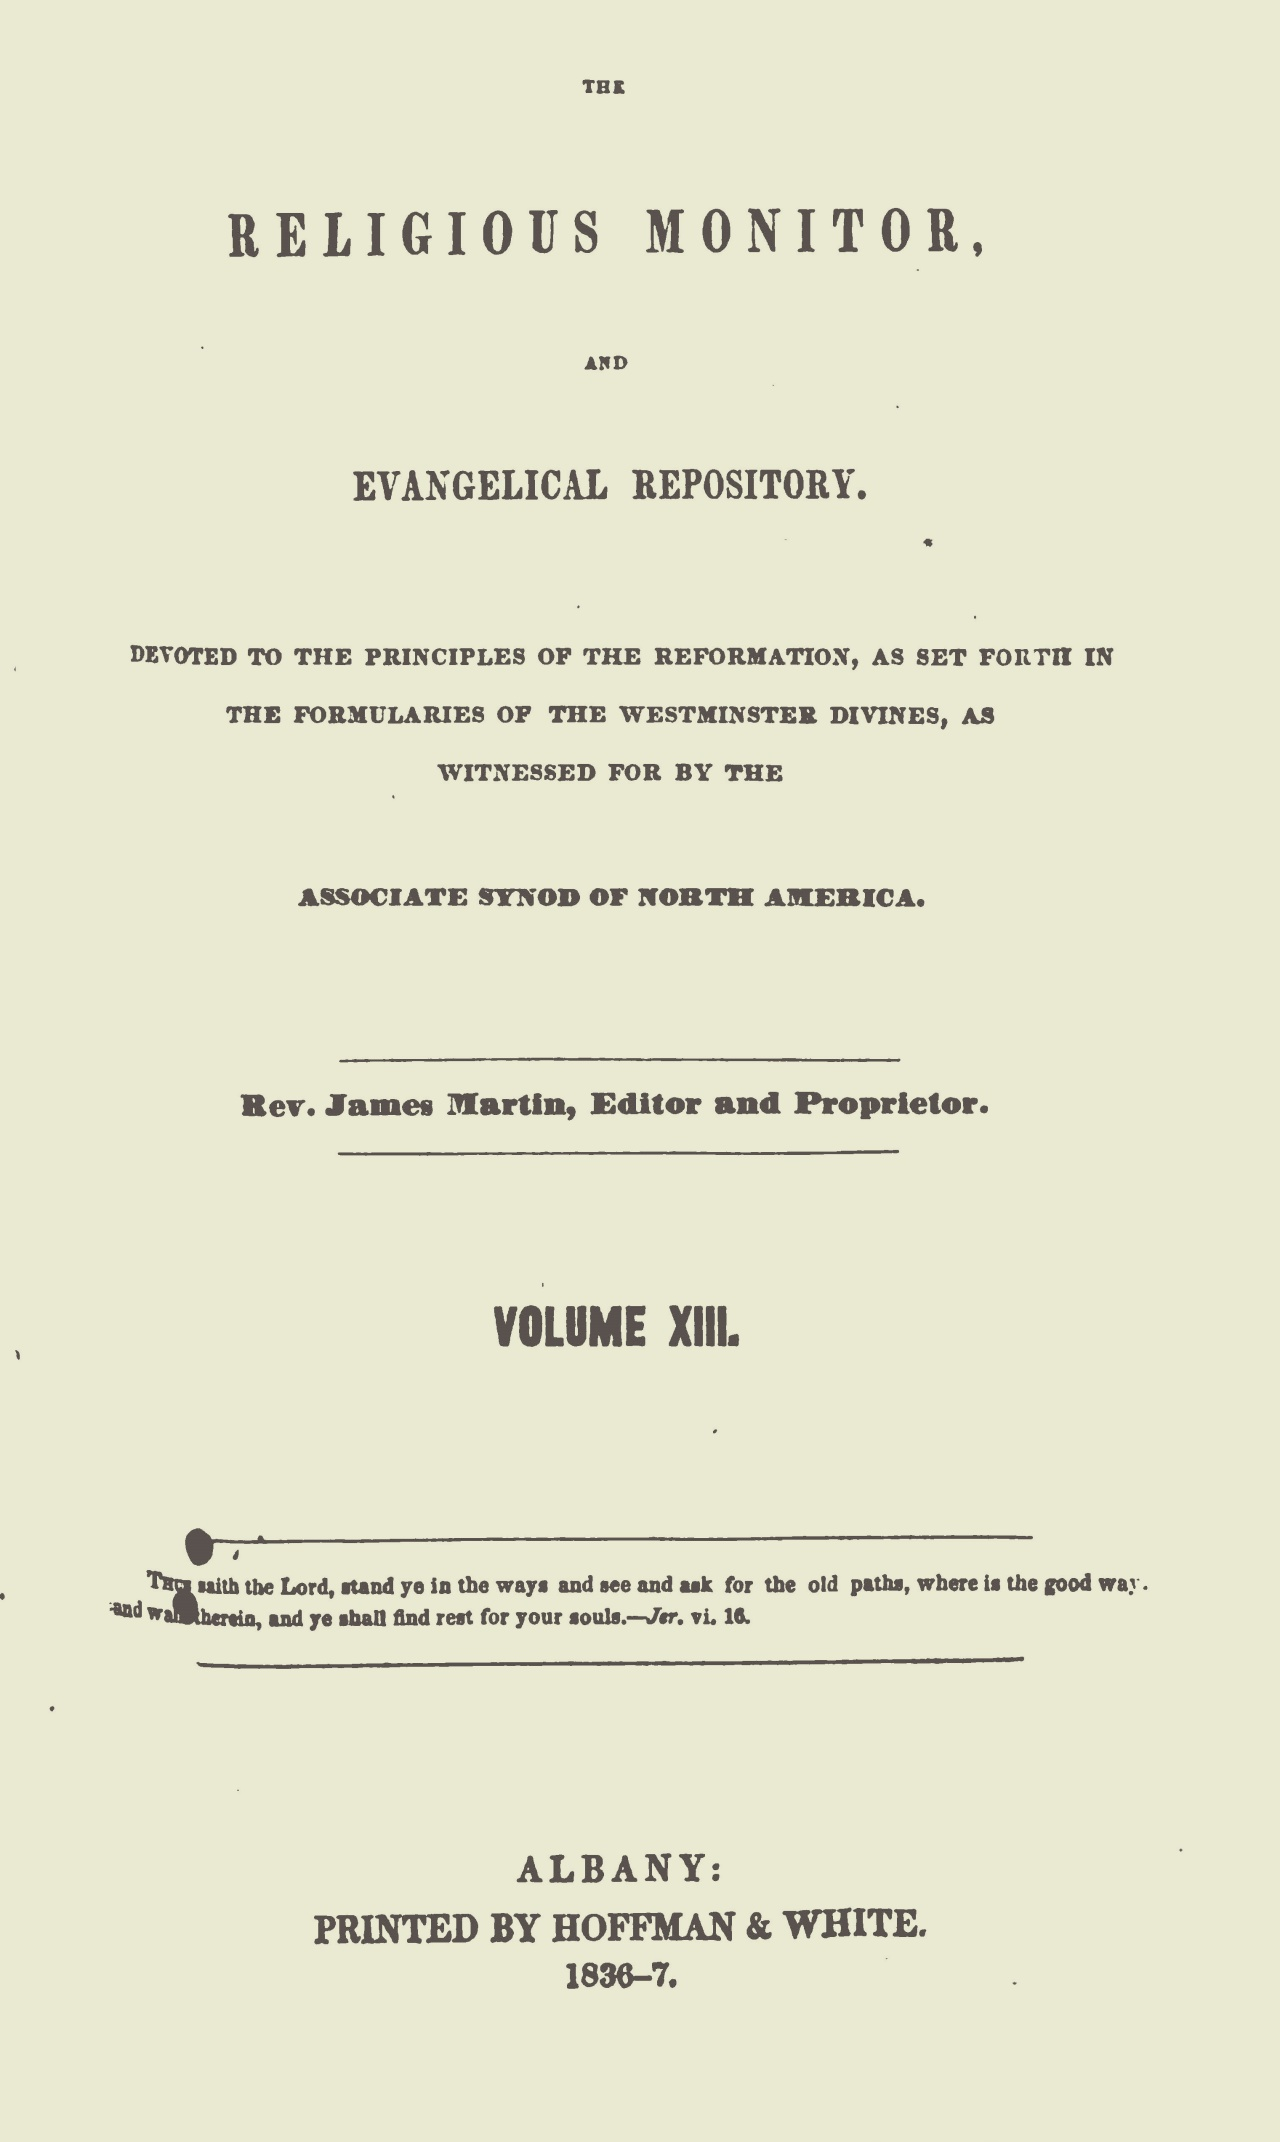 Webster, Chauncey, The Religious Monitor, and Evangelical Repository, Vol. 13 Title Page.jpg